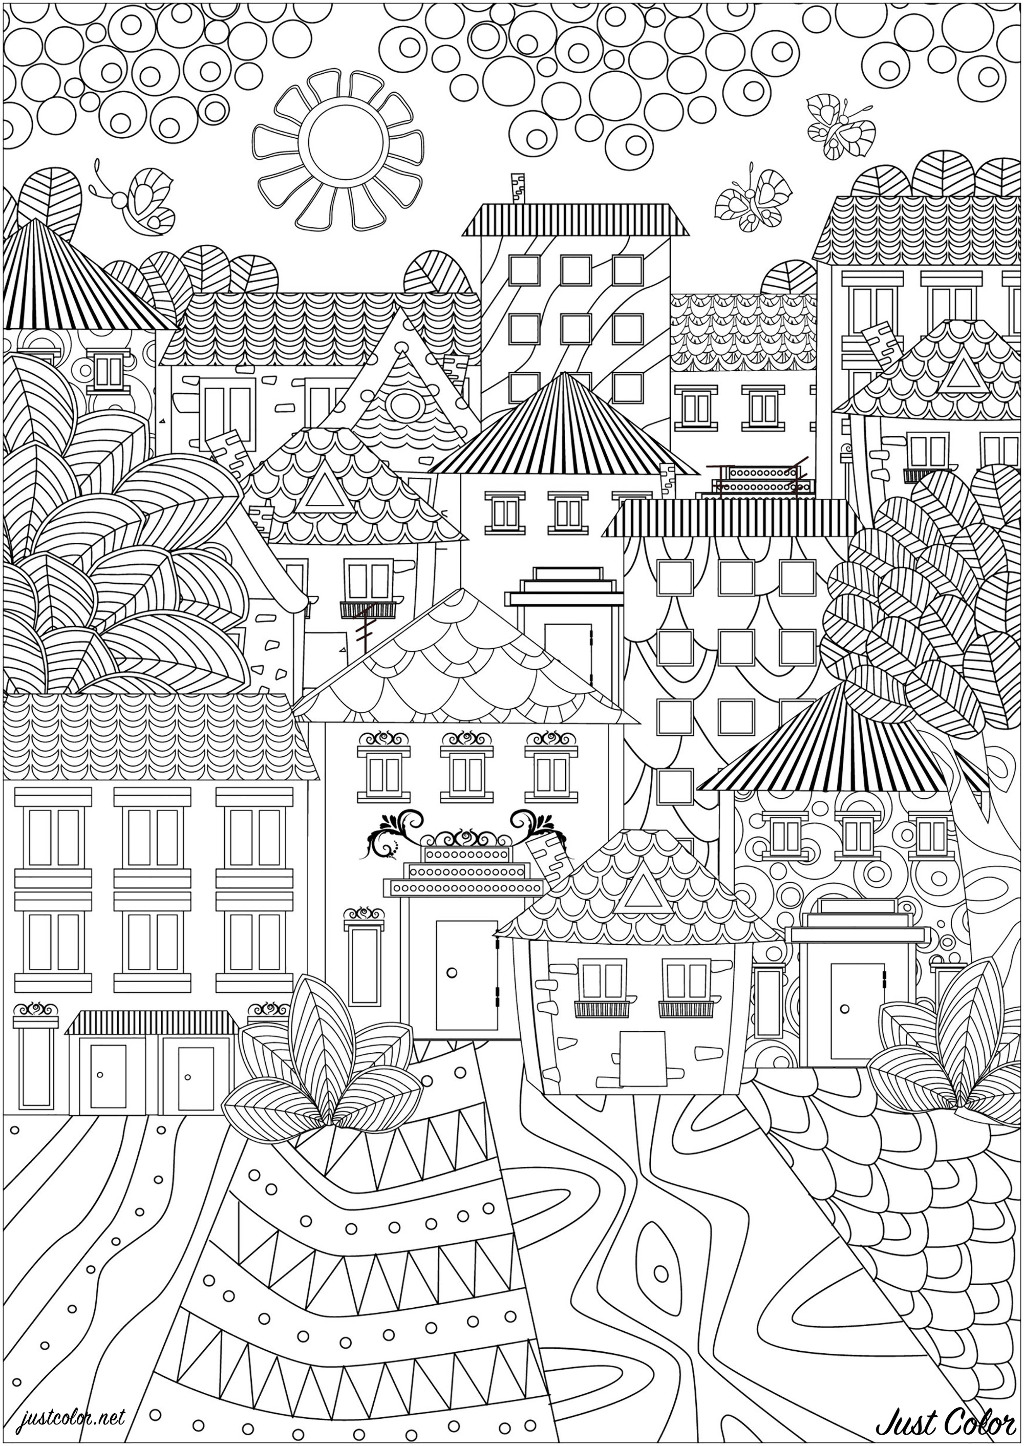 A town made up of pretty houses with simple and elegant patterns